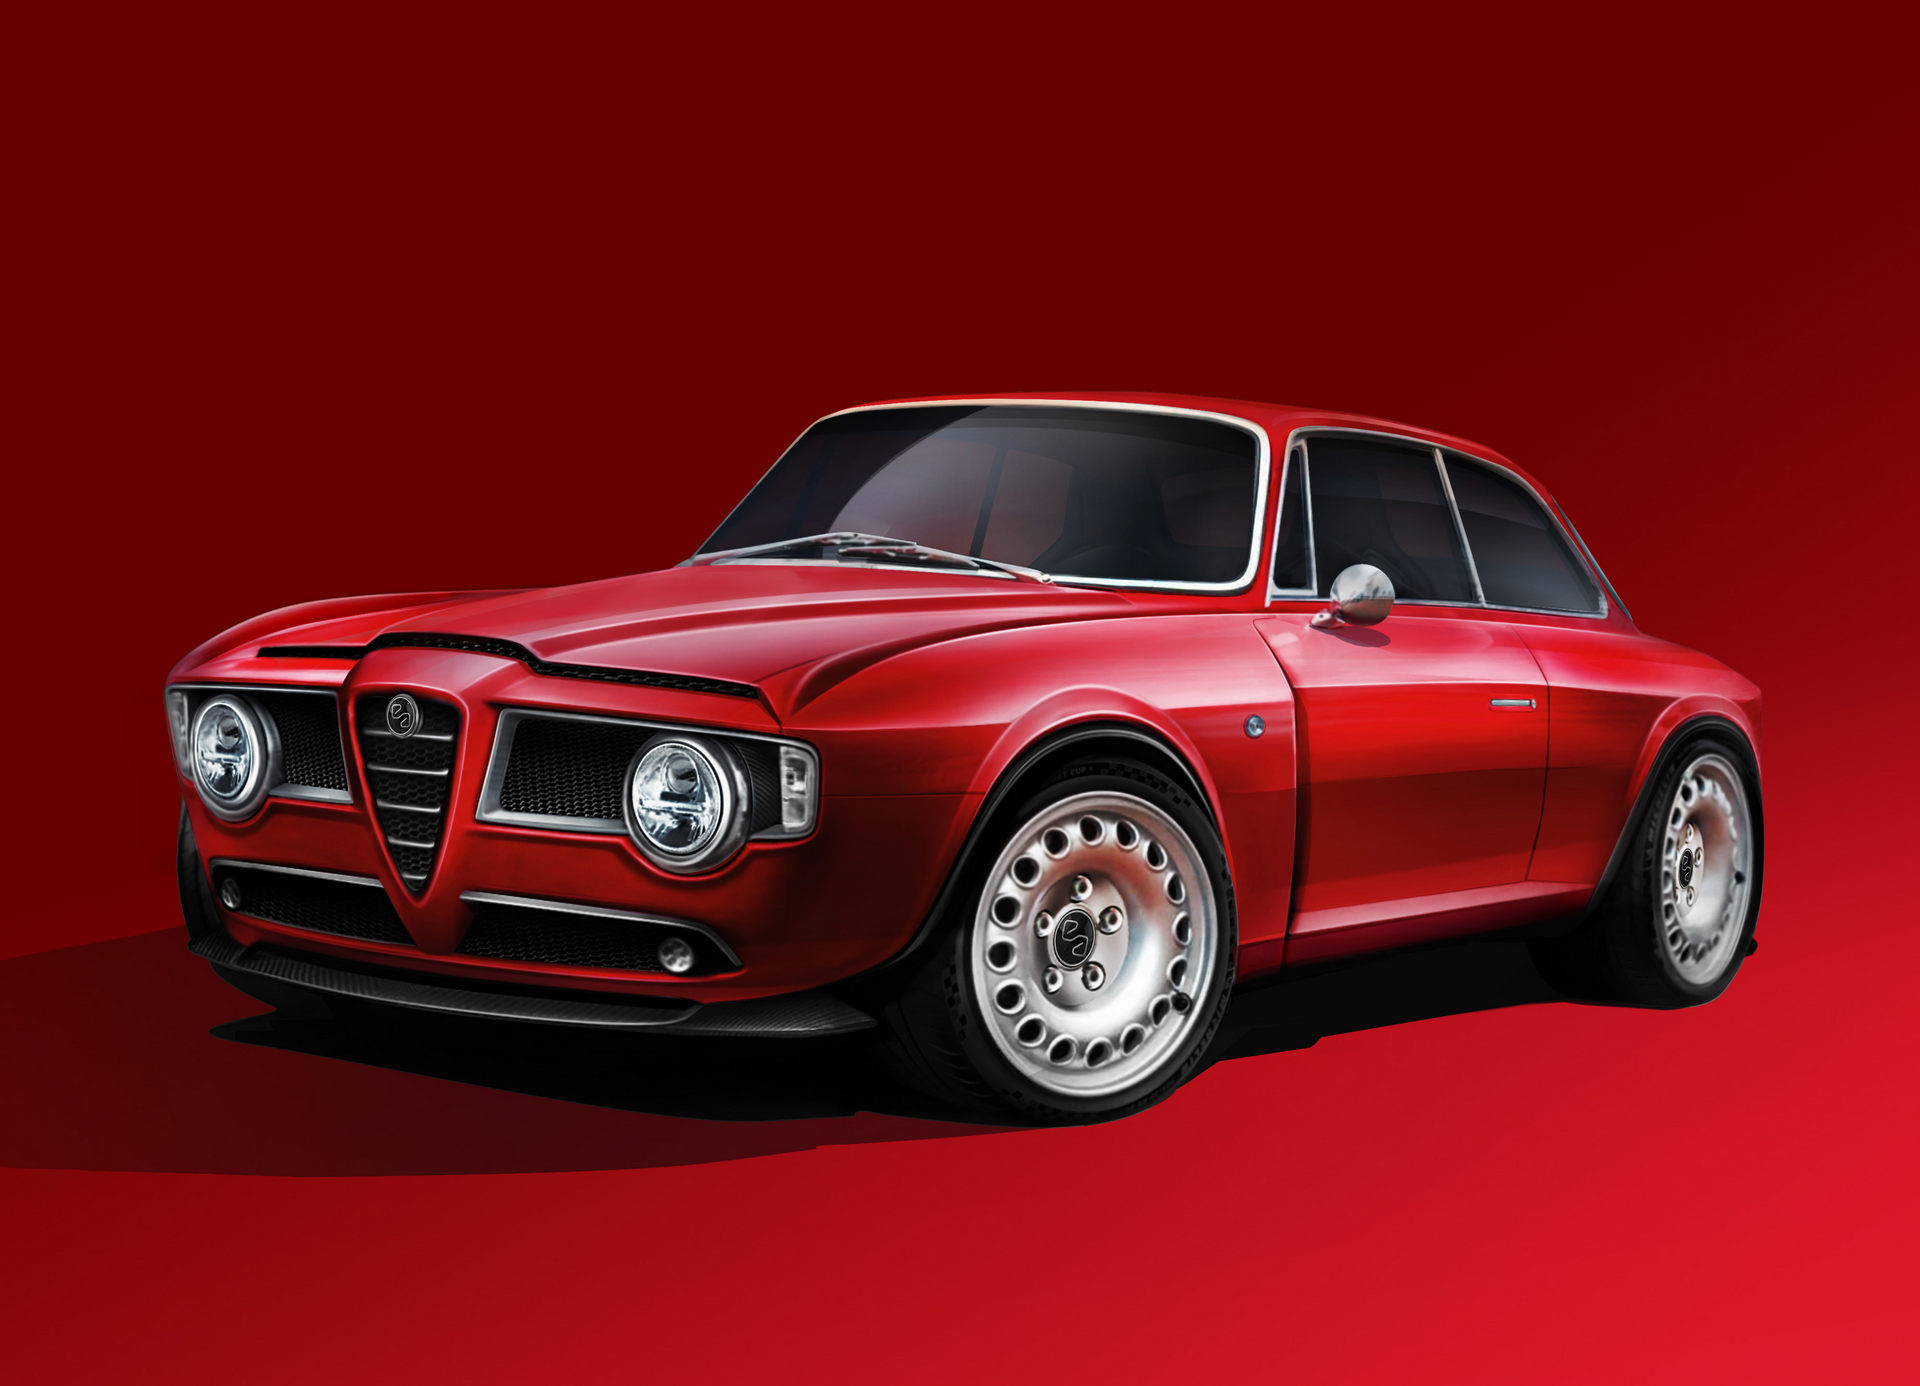 Despite the relentless drive towards electrification over these past years, many tuners still hold on to their traditional values and make great profits restoring classical cars. Let's see how far U.S. $471,000 (€400,000) can go to bring back an Alfa Romeo Giulia GT.